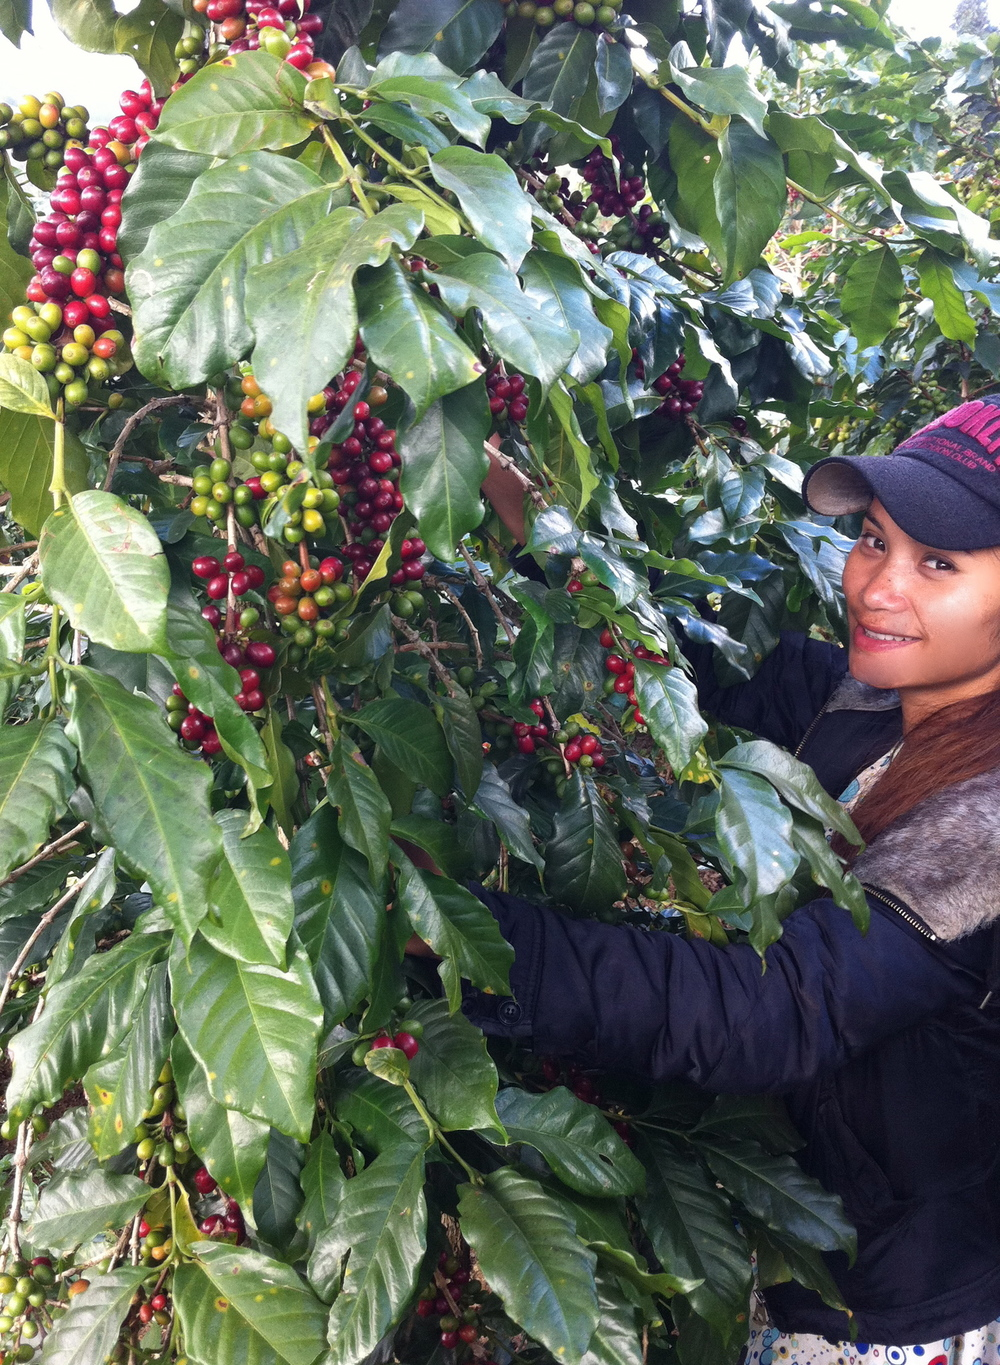 Picking only the ripest Arabica cherries on offer.